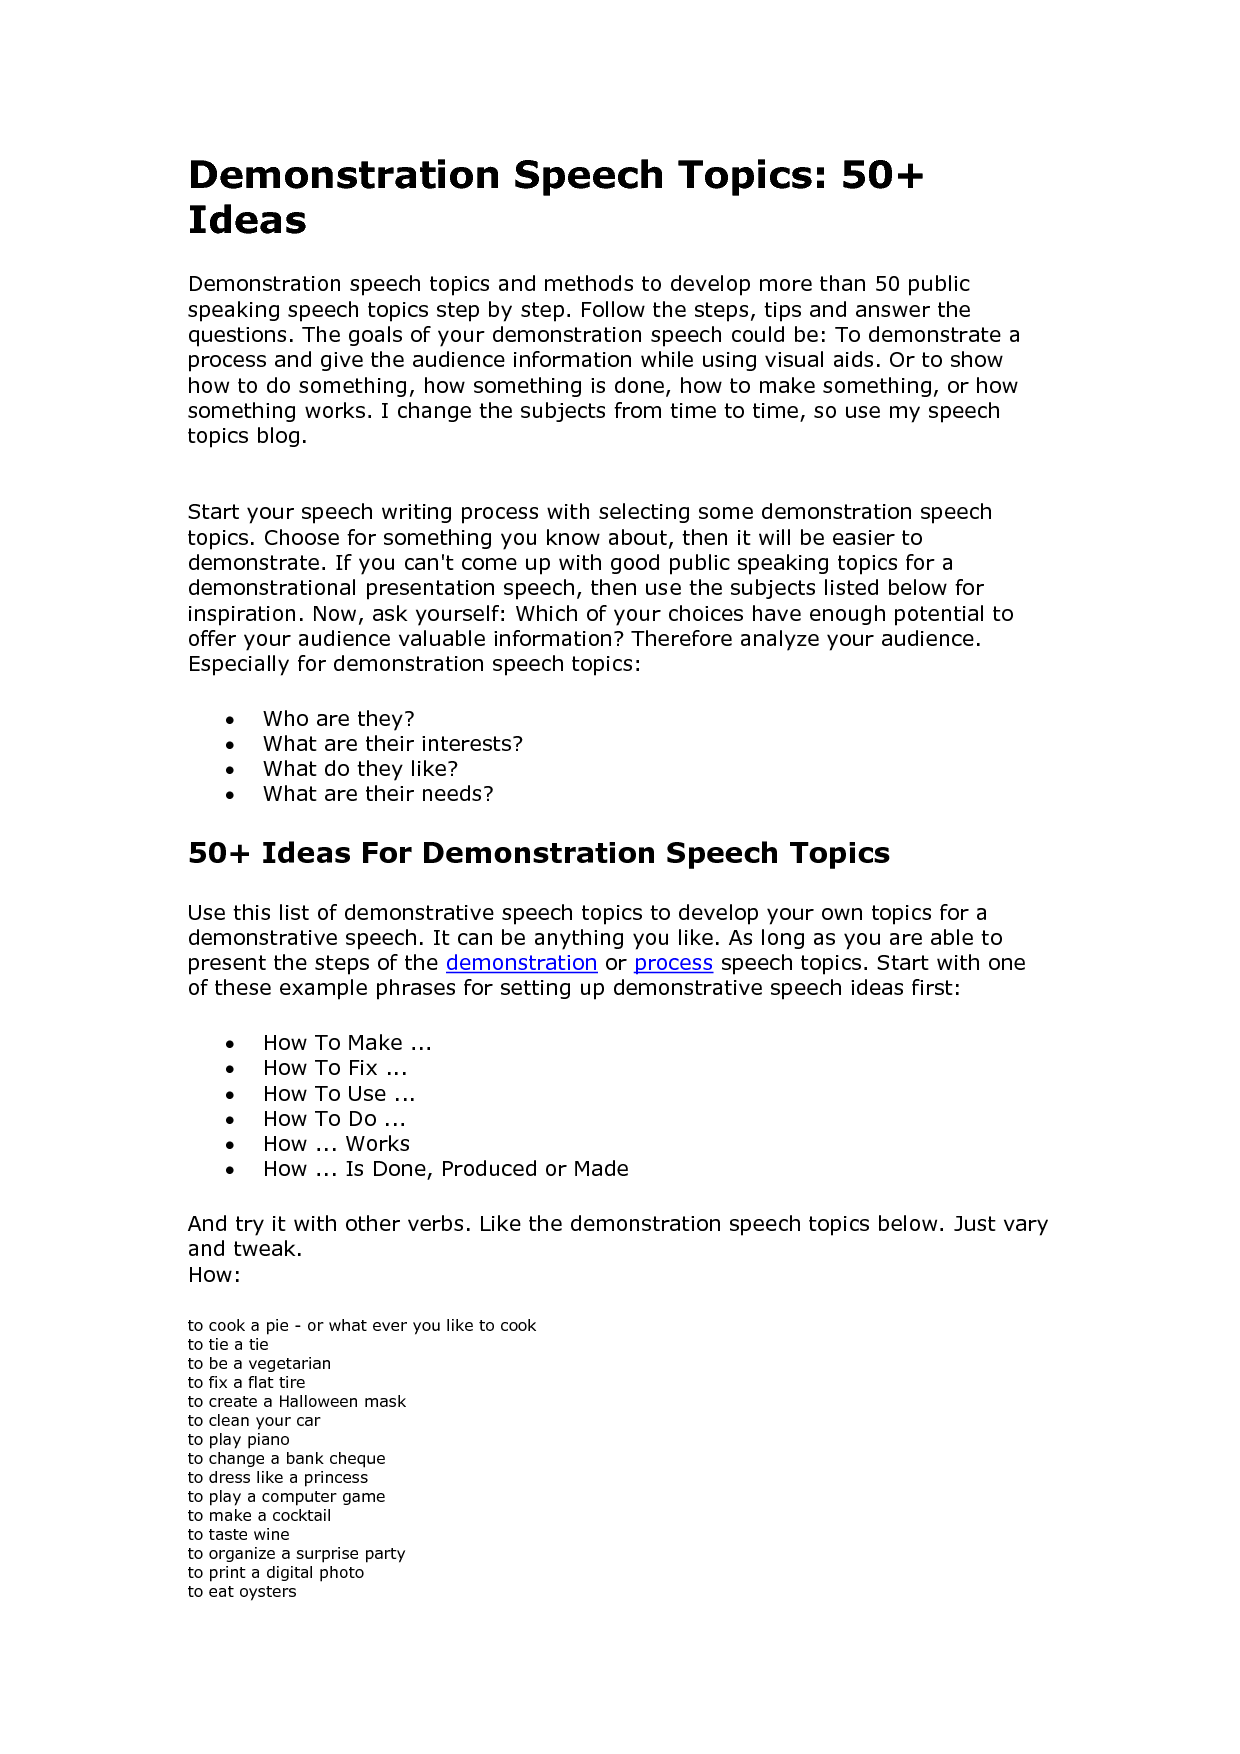 demonstration essay ideas images about school